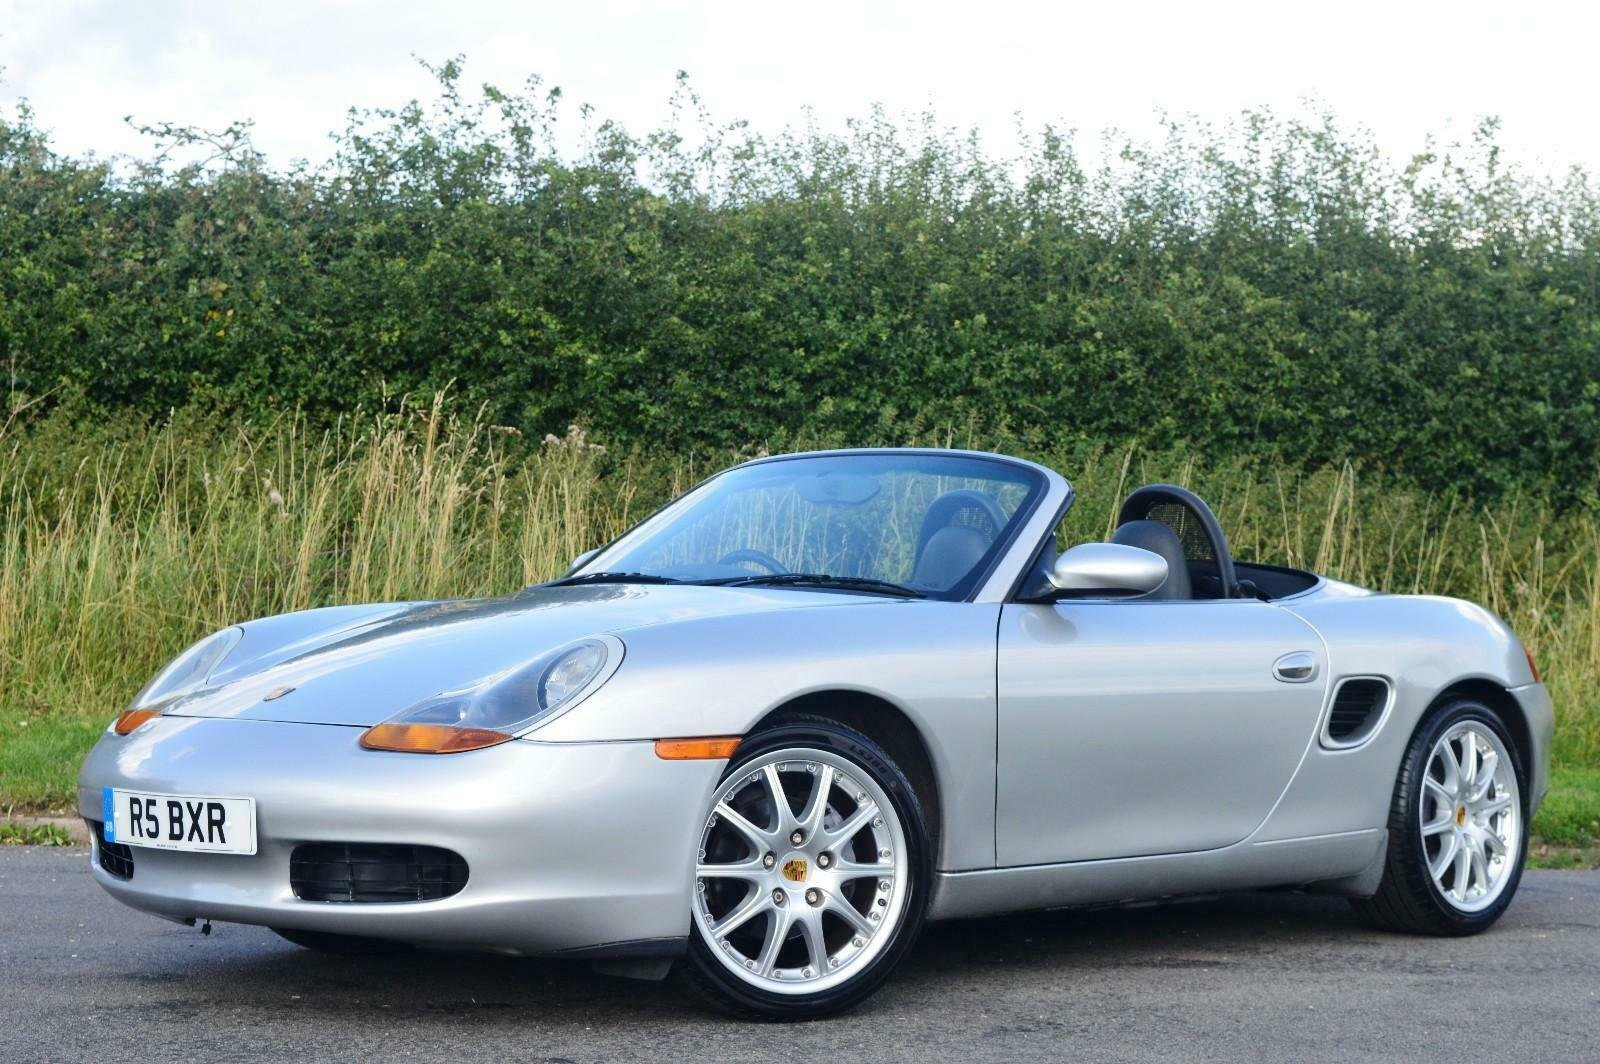 1998 Porsche Boxster 986 2.5 Manual Petrol Convertible F.S.H SOLD (picture 2 of 6)